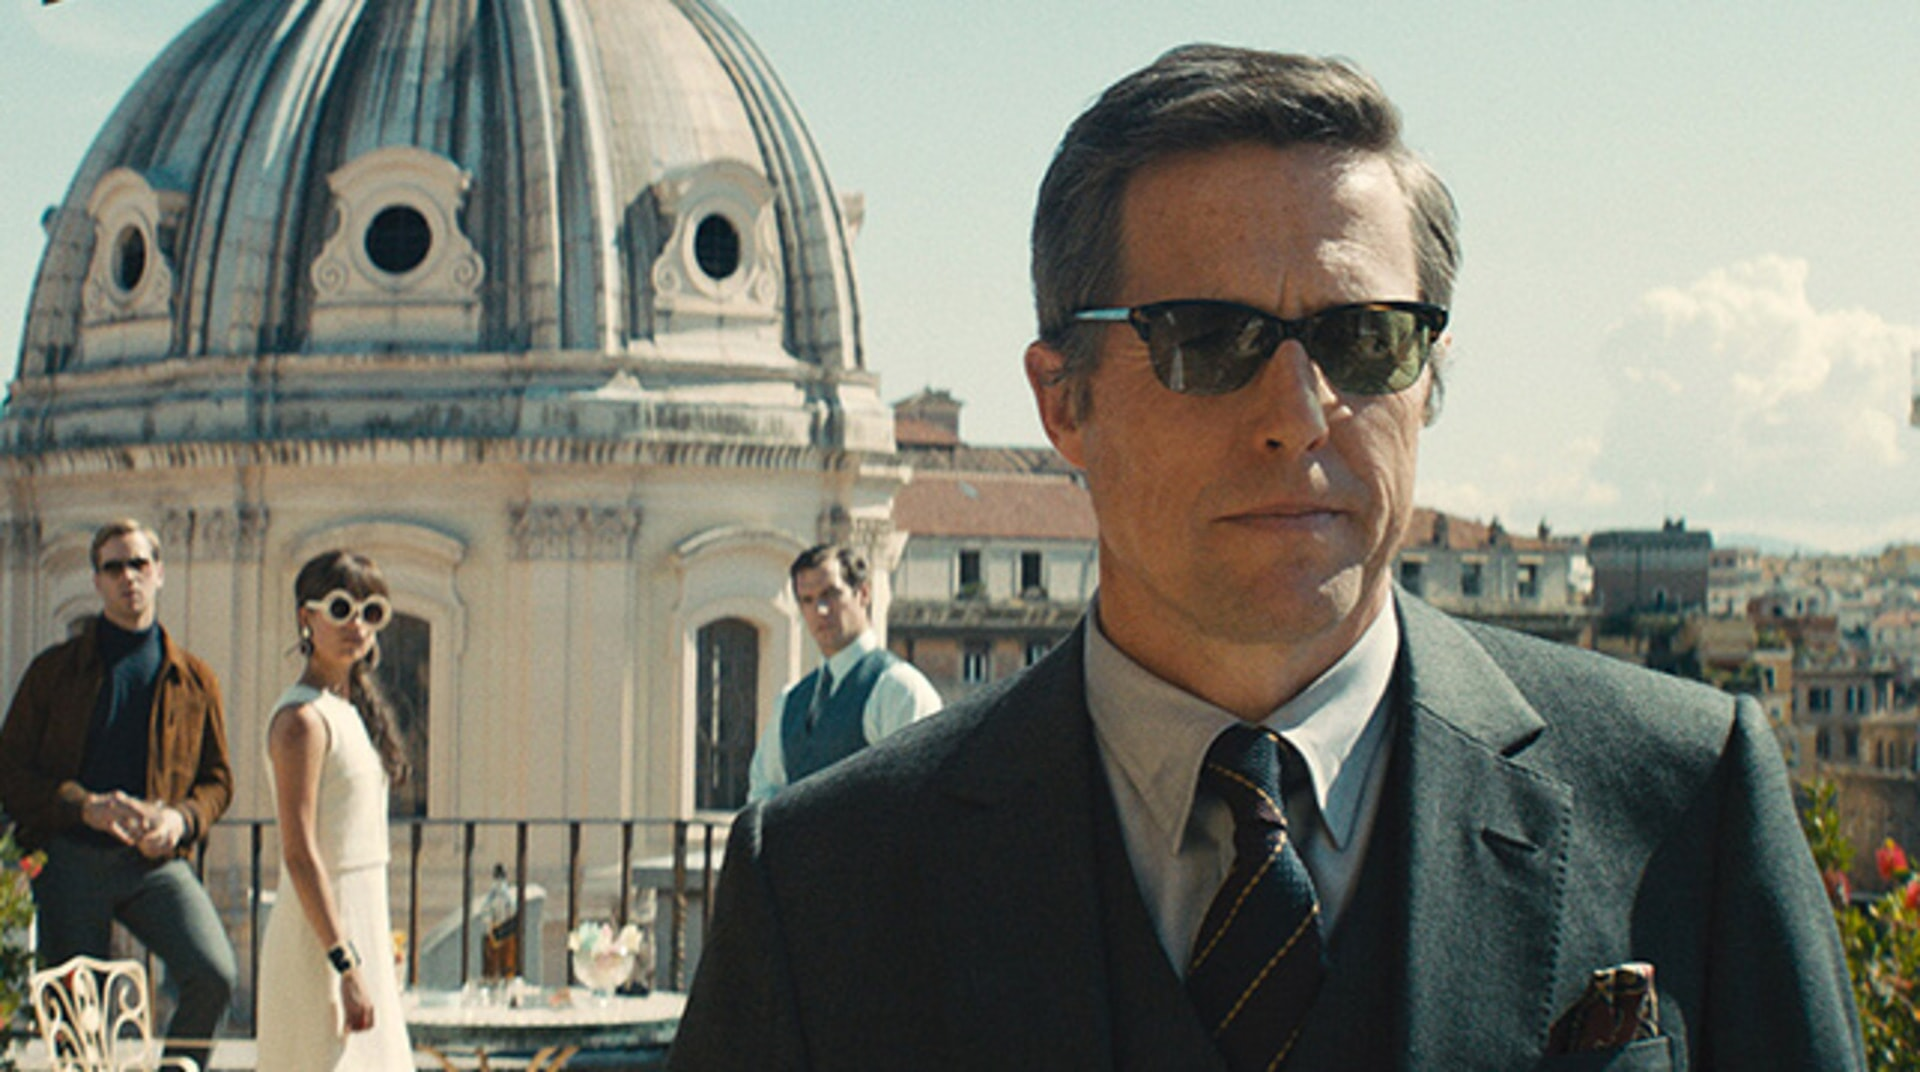 The Man From U.N.C.L.E. - Image 34